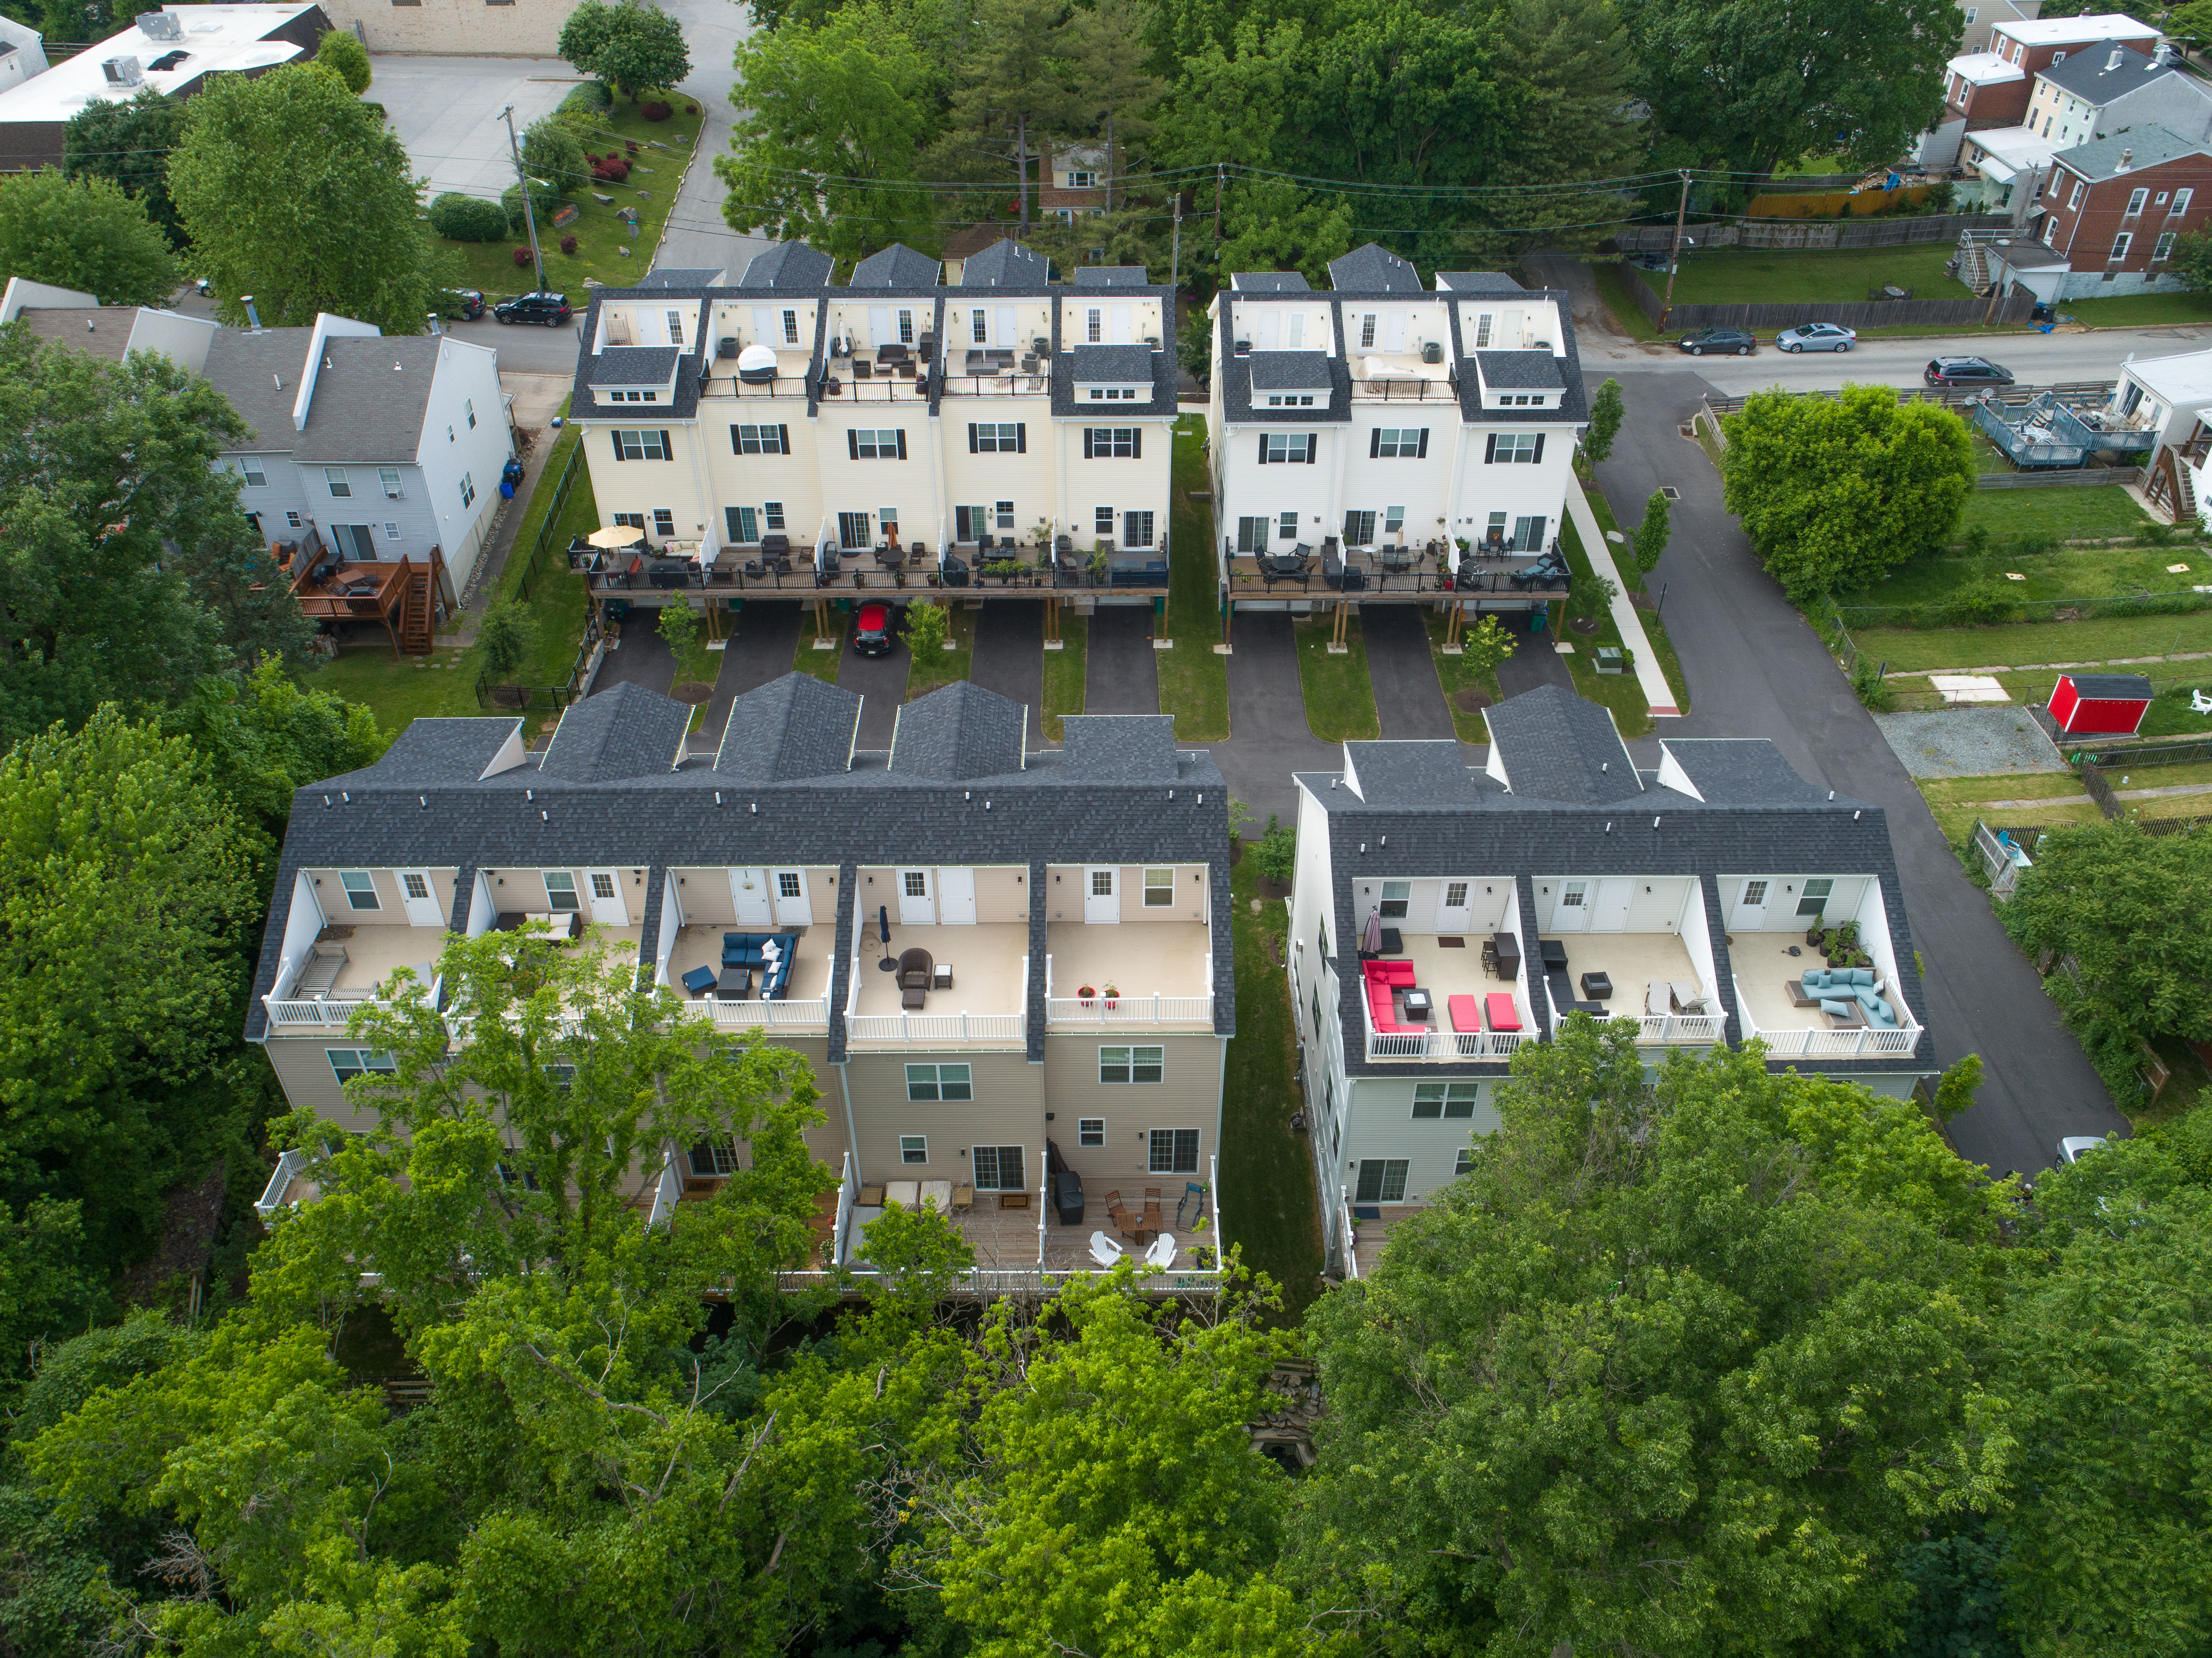 Real Estate Marketing: Million Dollar Views with Drone Photography